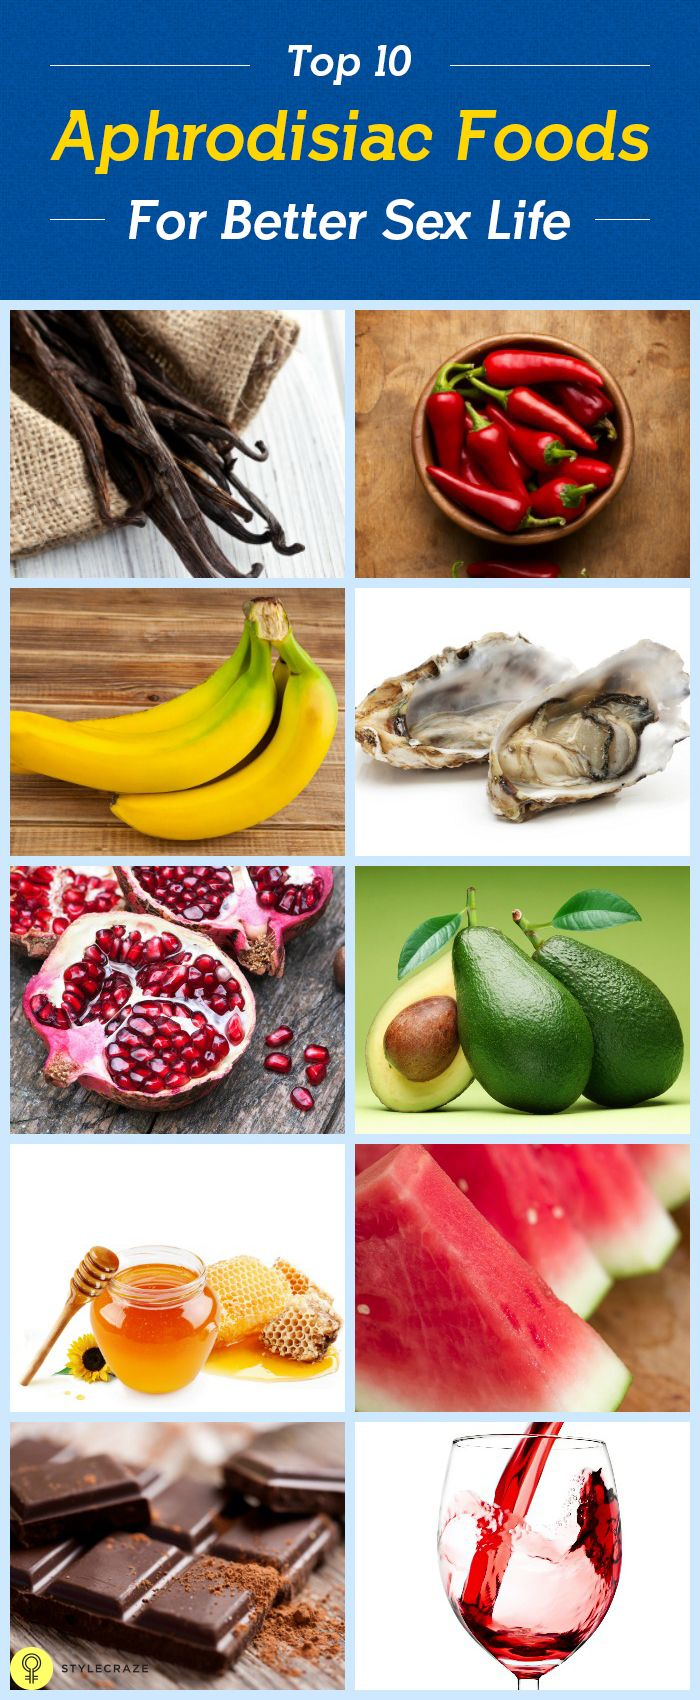 Top foods to increase libido or sexual desire my health tips - 10 Tasty And Healthy Mediterranean Food Recipes